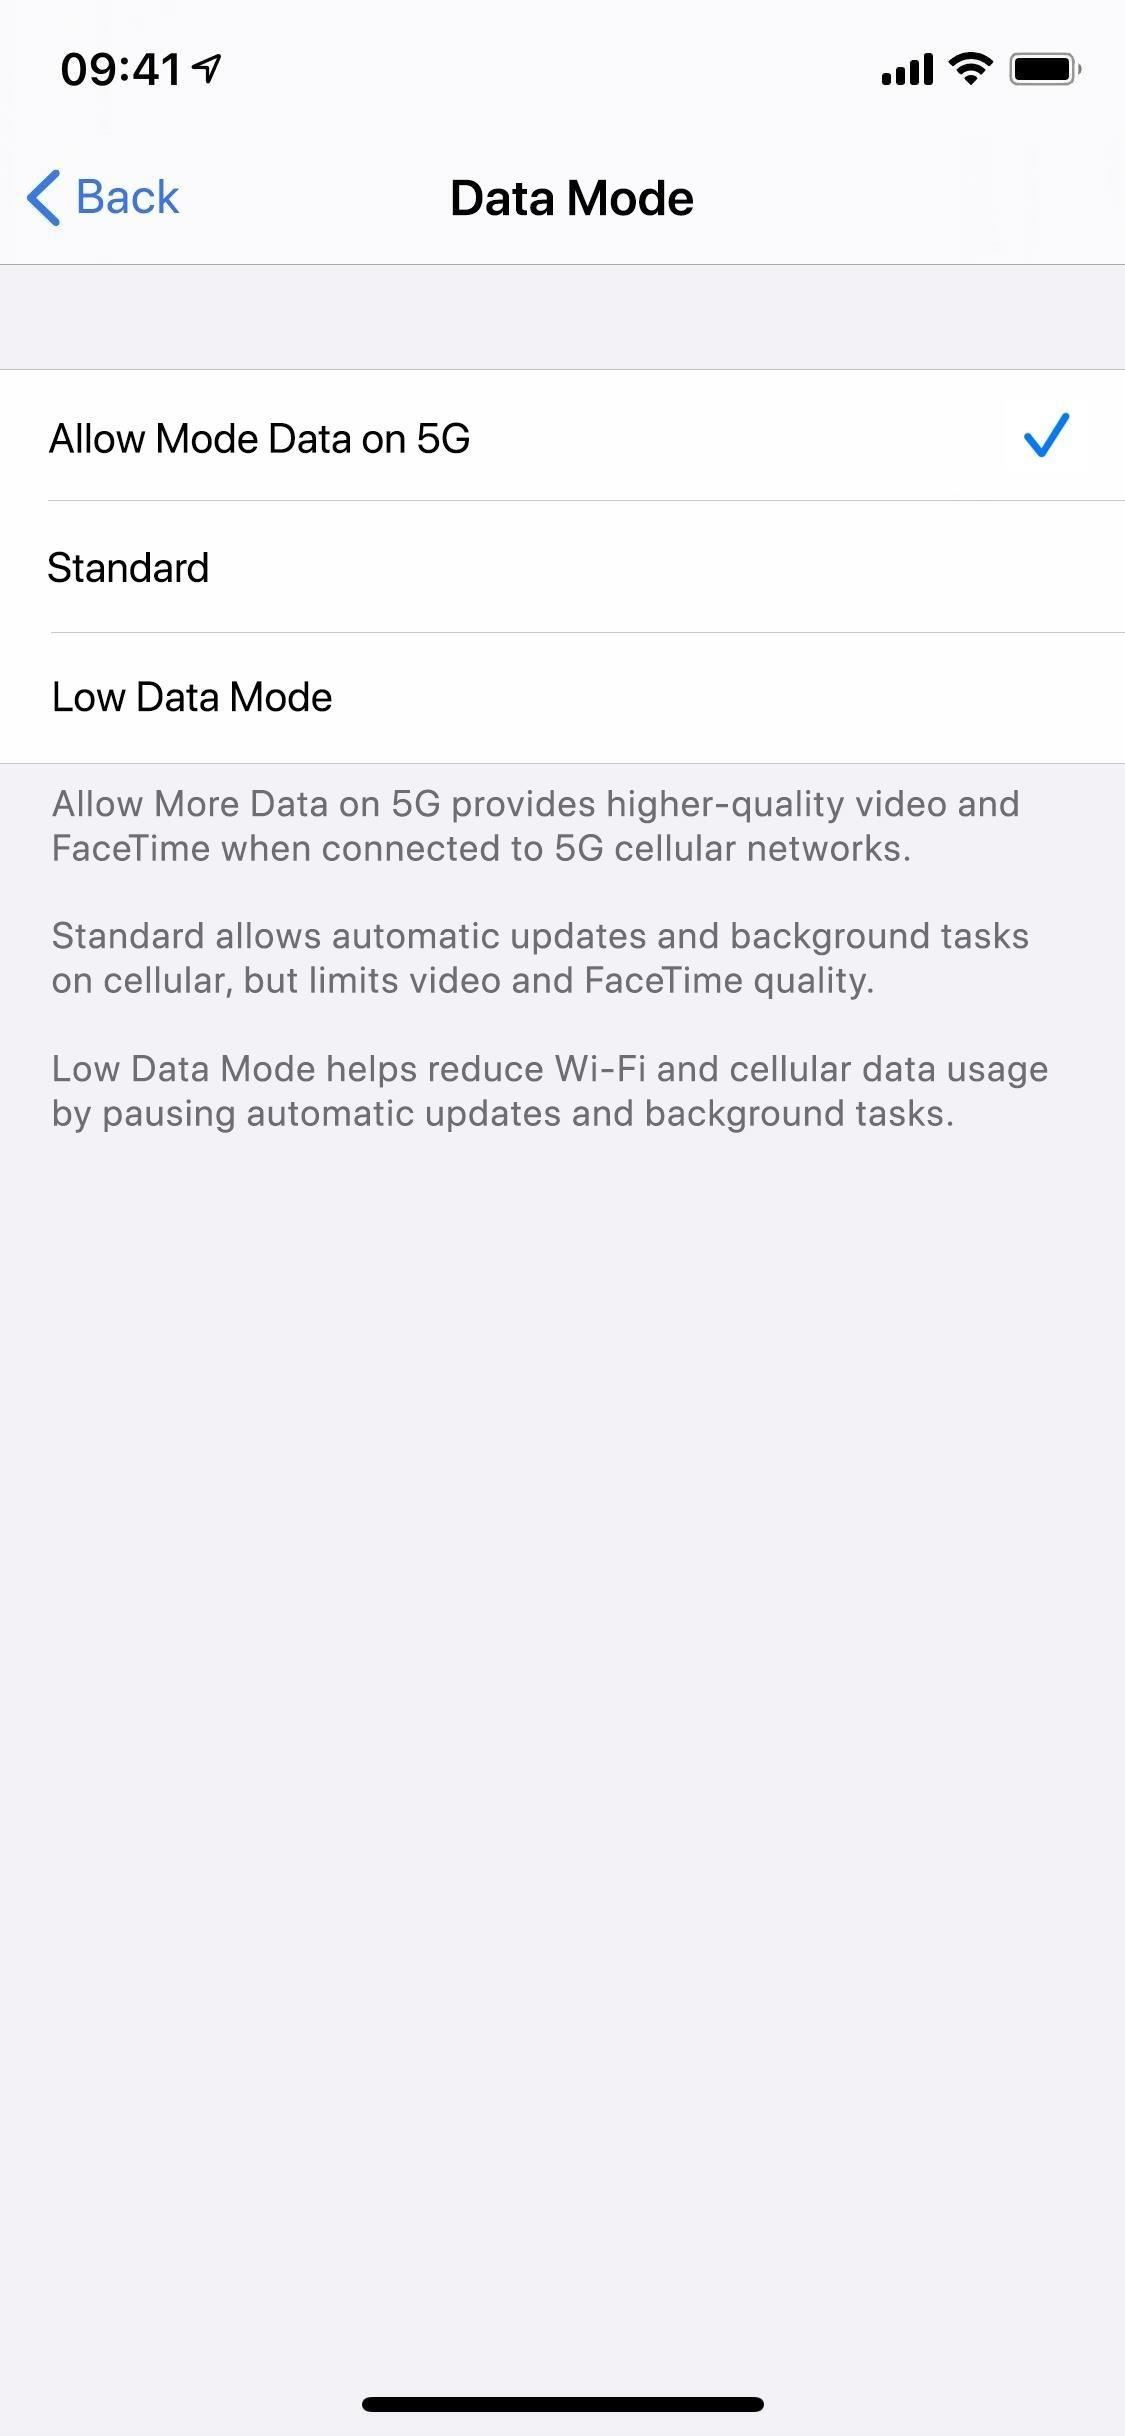 The New iPhones Let You Perform Software Updates Over 5G Networks, but You Might Need to Do This First